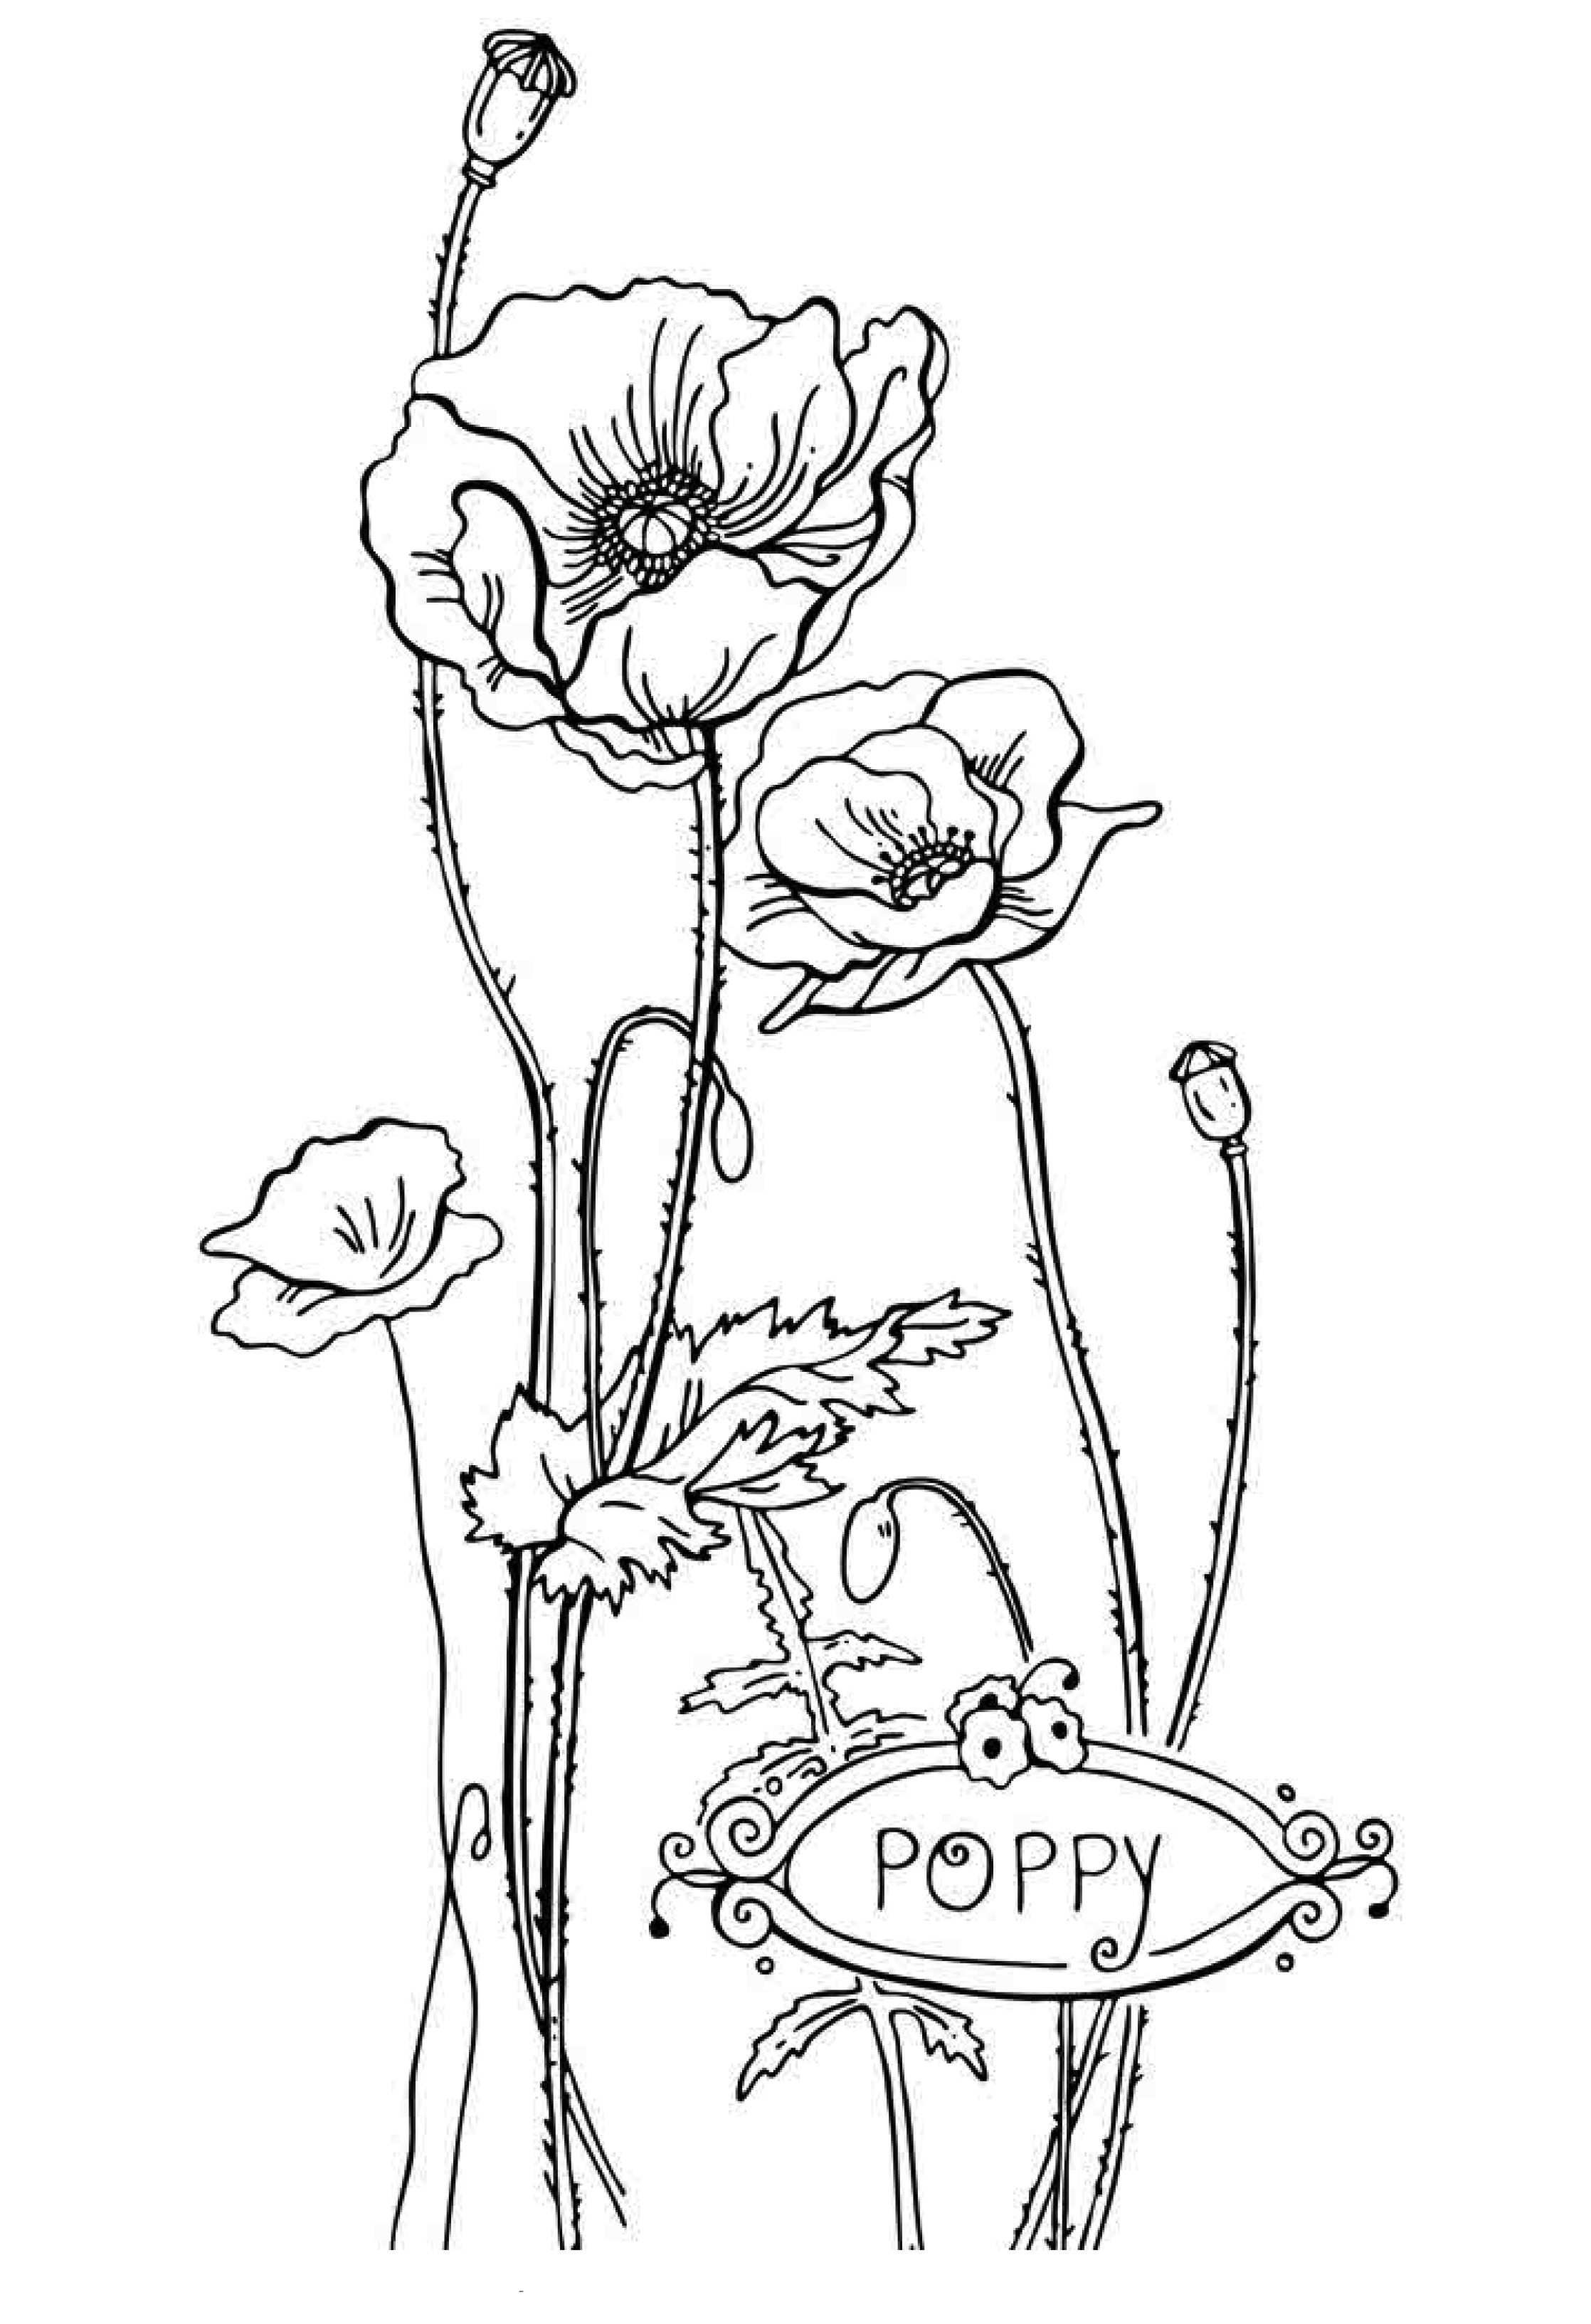 childrens colouring pictures 40 exclusive kids coloring pages ideas we need fun childrens colouring pictures